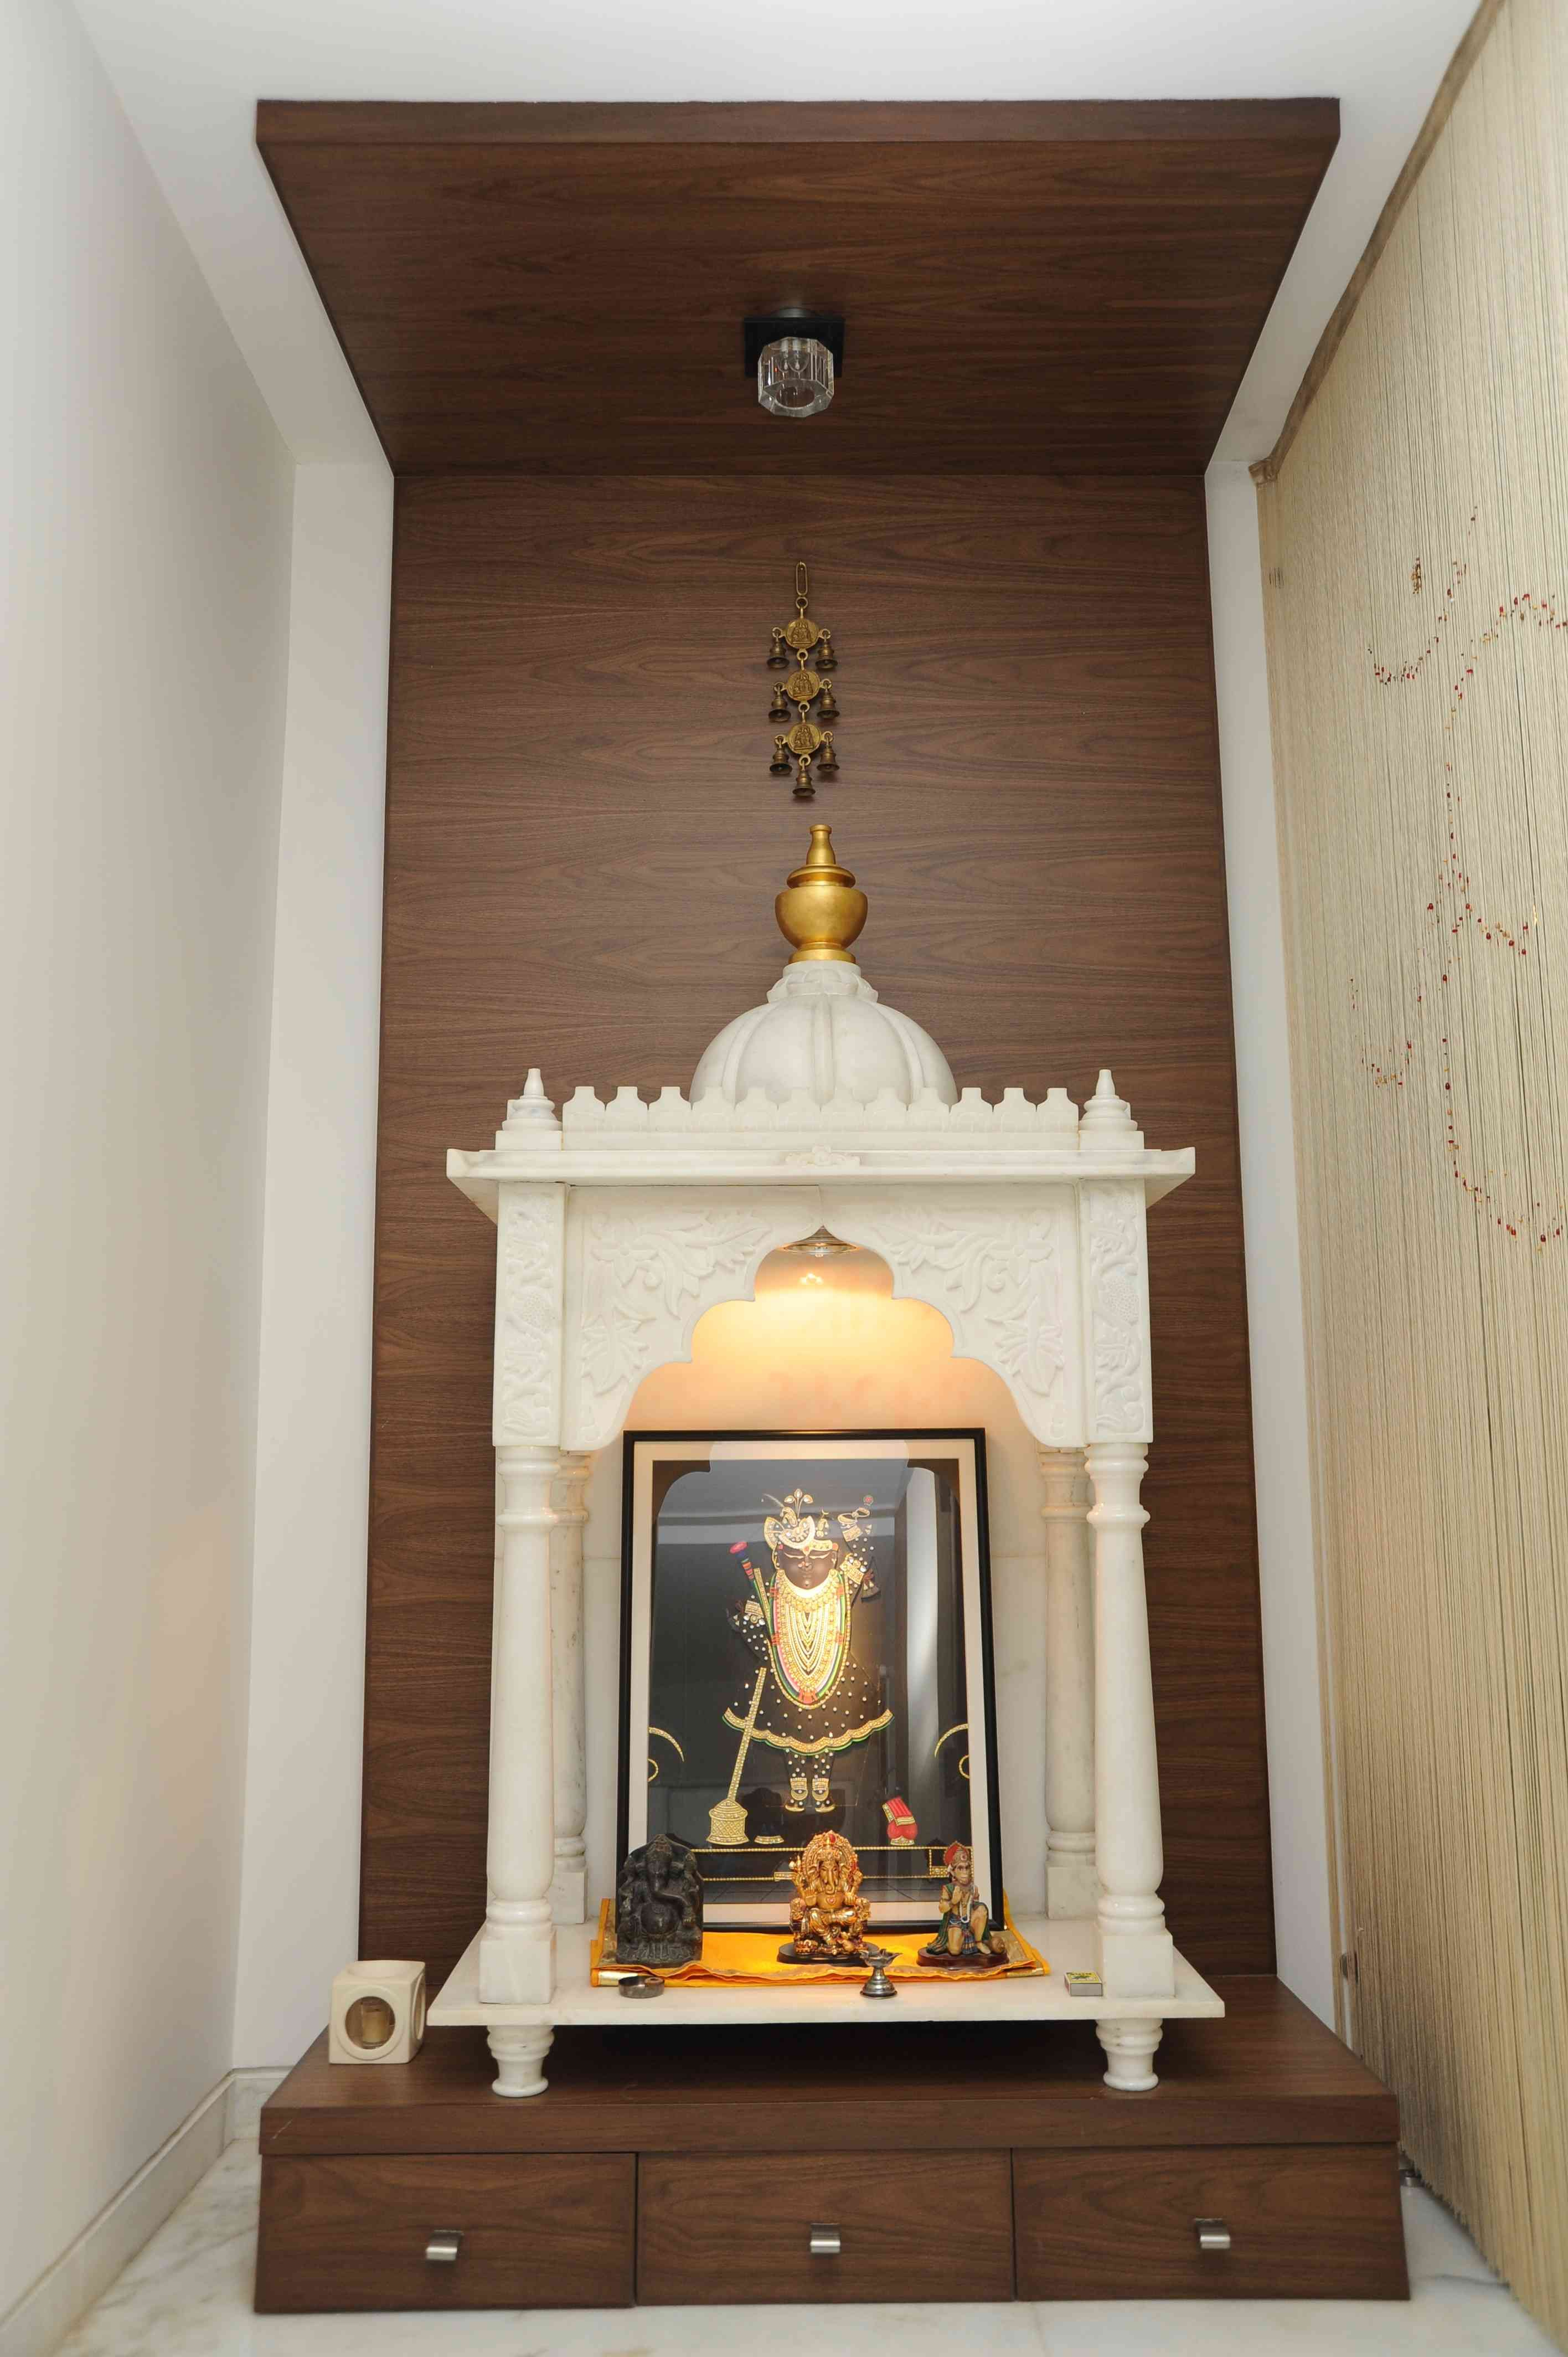 Lamps doors vastu idols placement pooja room ideas pooja room - Desai House Residential Single Family Dwelling Our Unique Design Approaches In Every Project Help Puja Roomroom Ideassingle